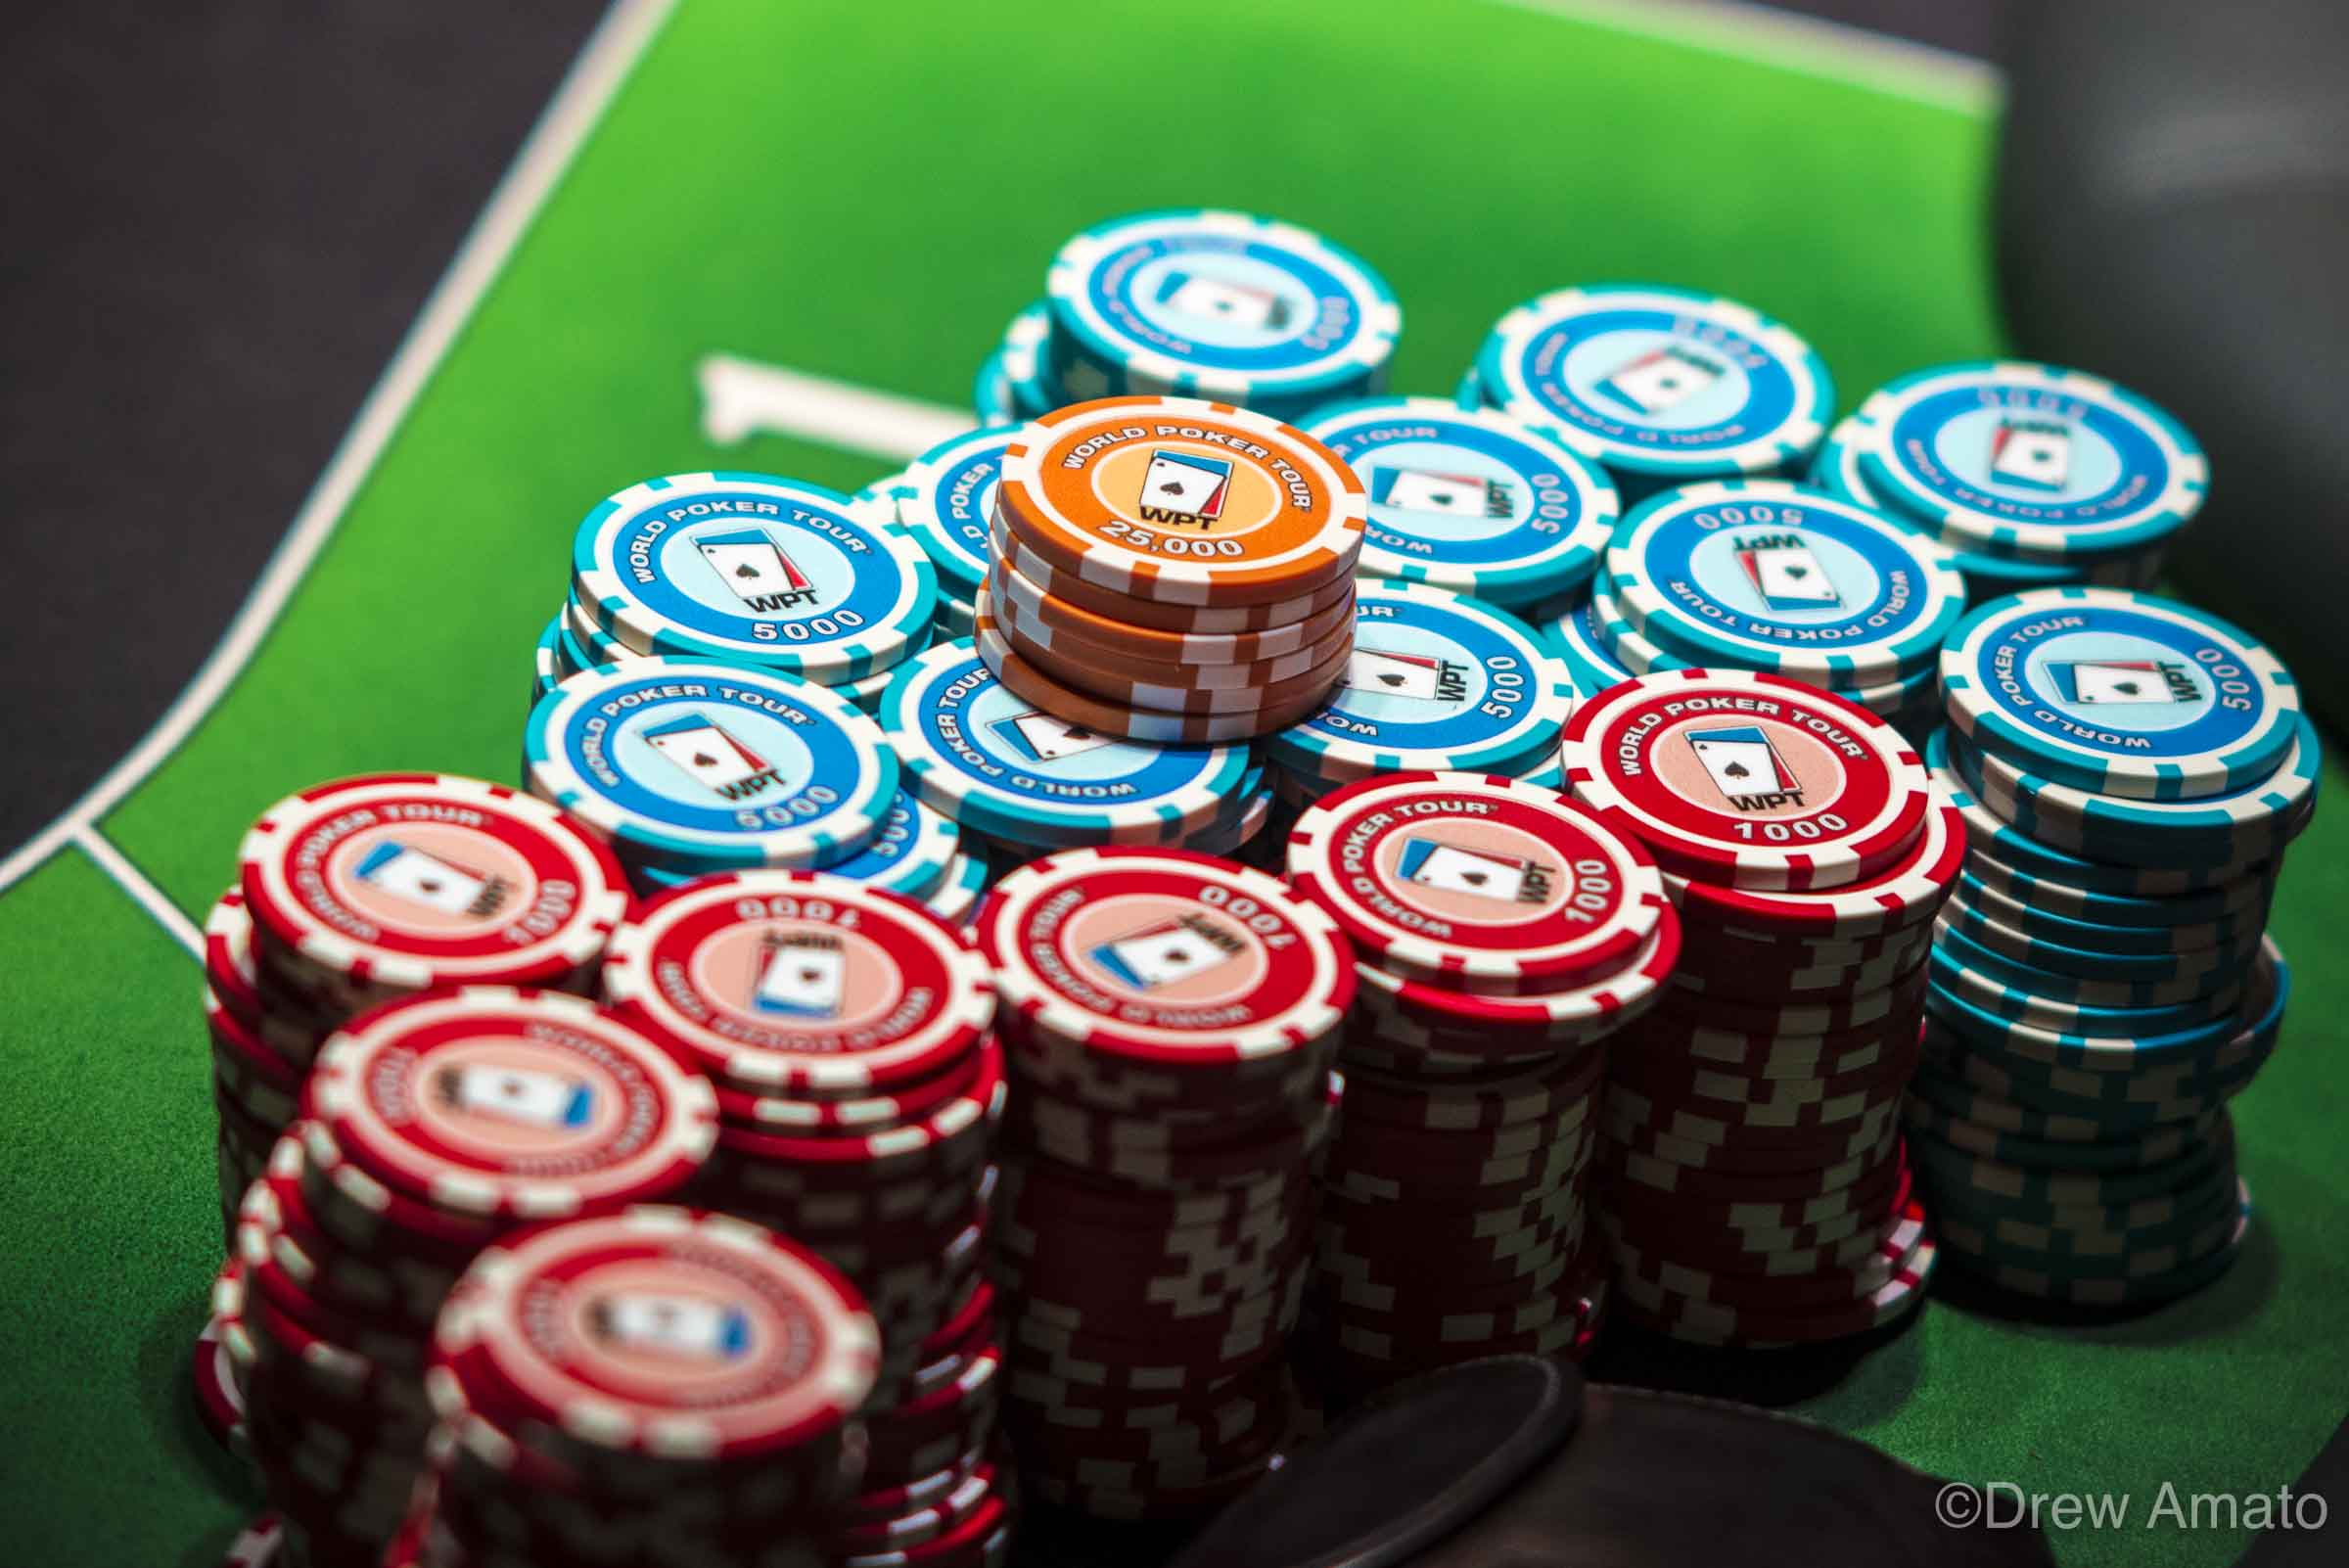 World Poker Tour_WPTDS Portugal_DA60531.jpg